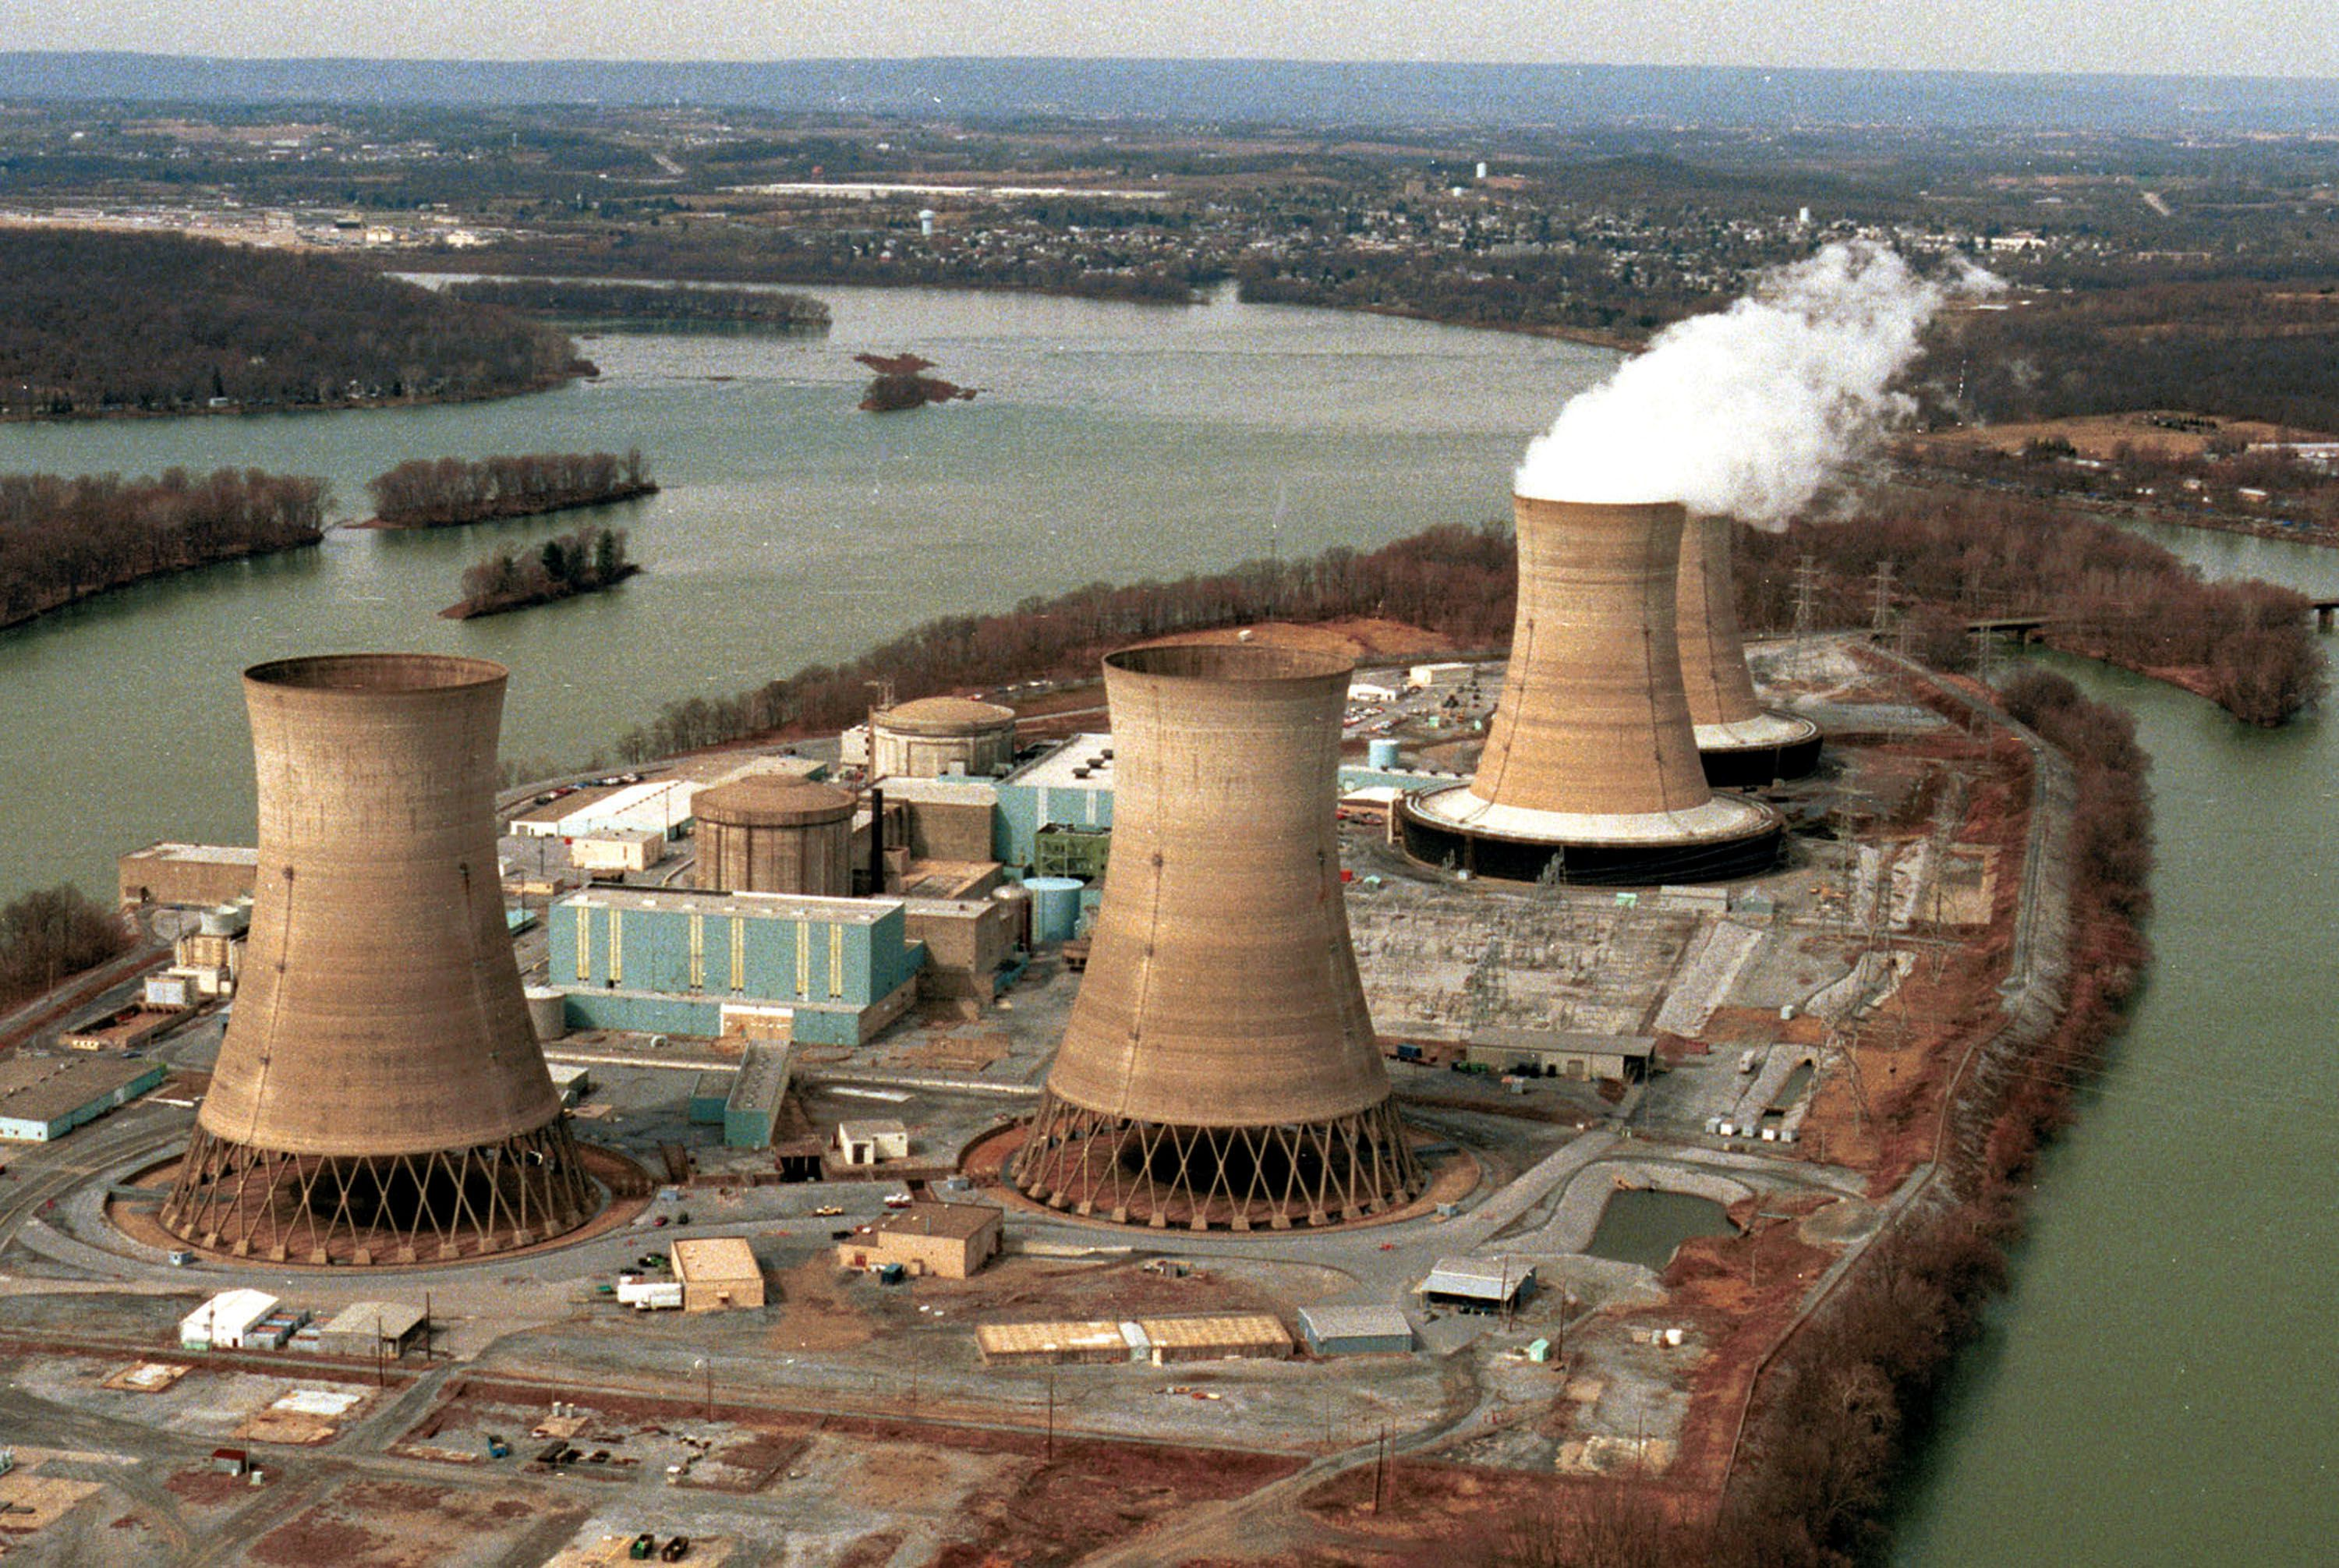 thesis bataan nuclear power plant In 1979 at three mile island nuclear power plant in usa a cooling malfunction caused part of the core to melt in the #2 reactor the tmi-2 reactor was destroyed some radioactive gas was released a couple of days after the accident, but not enough to cause any dose above background levels to local.